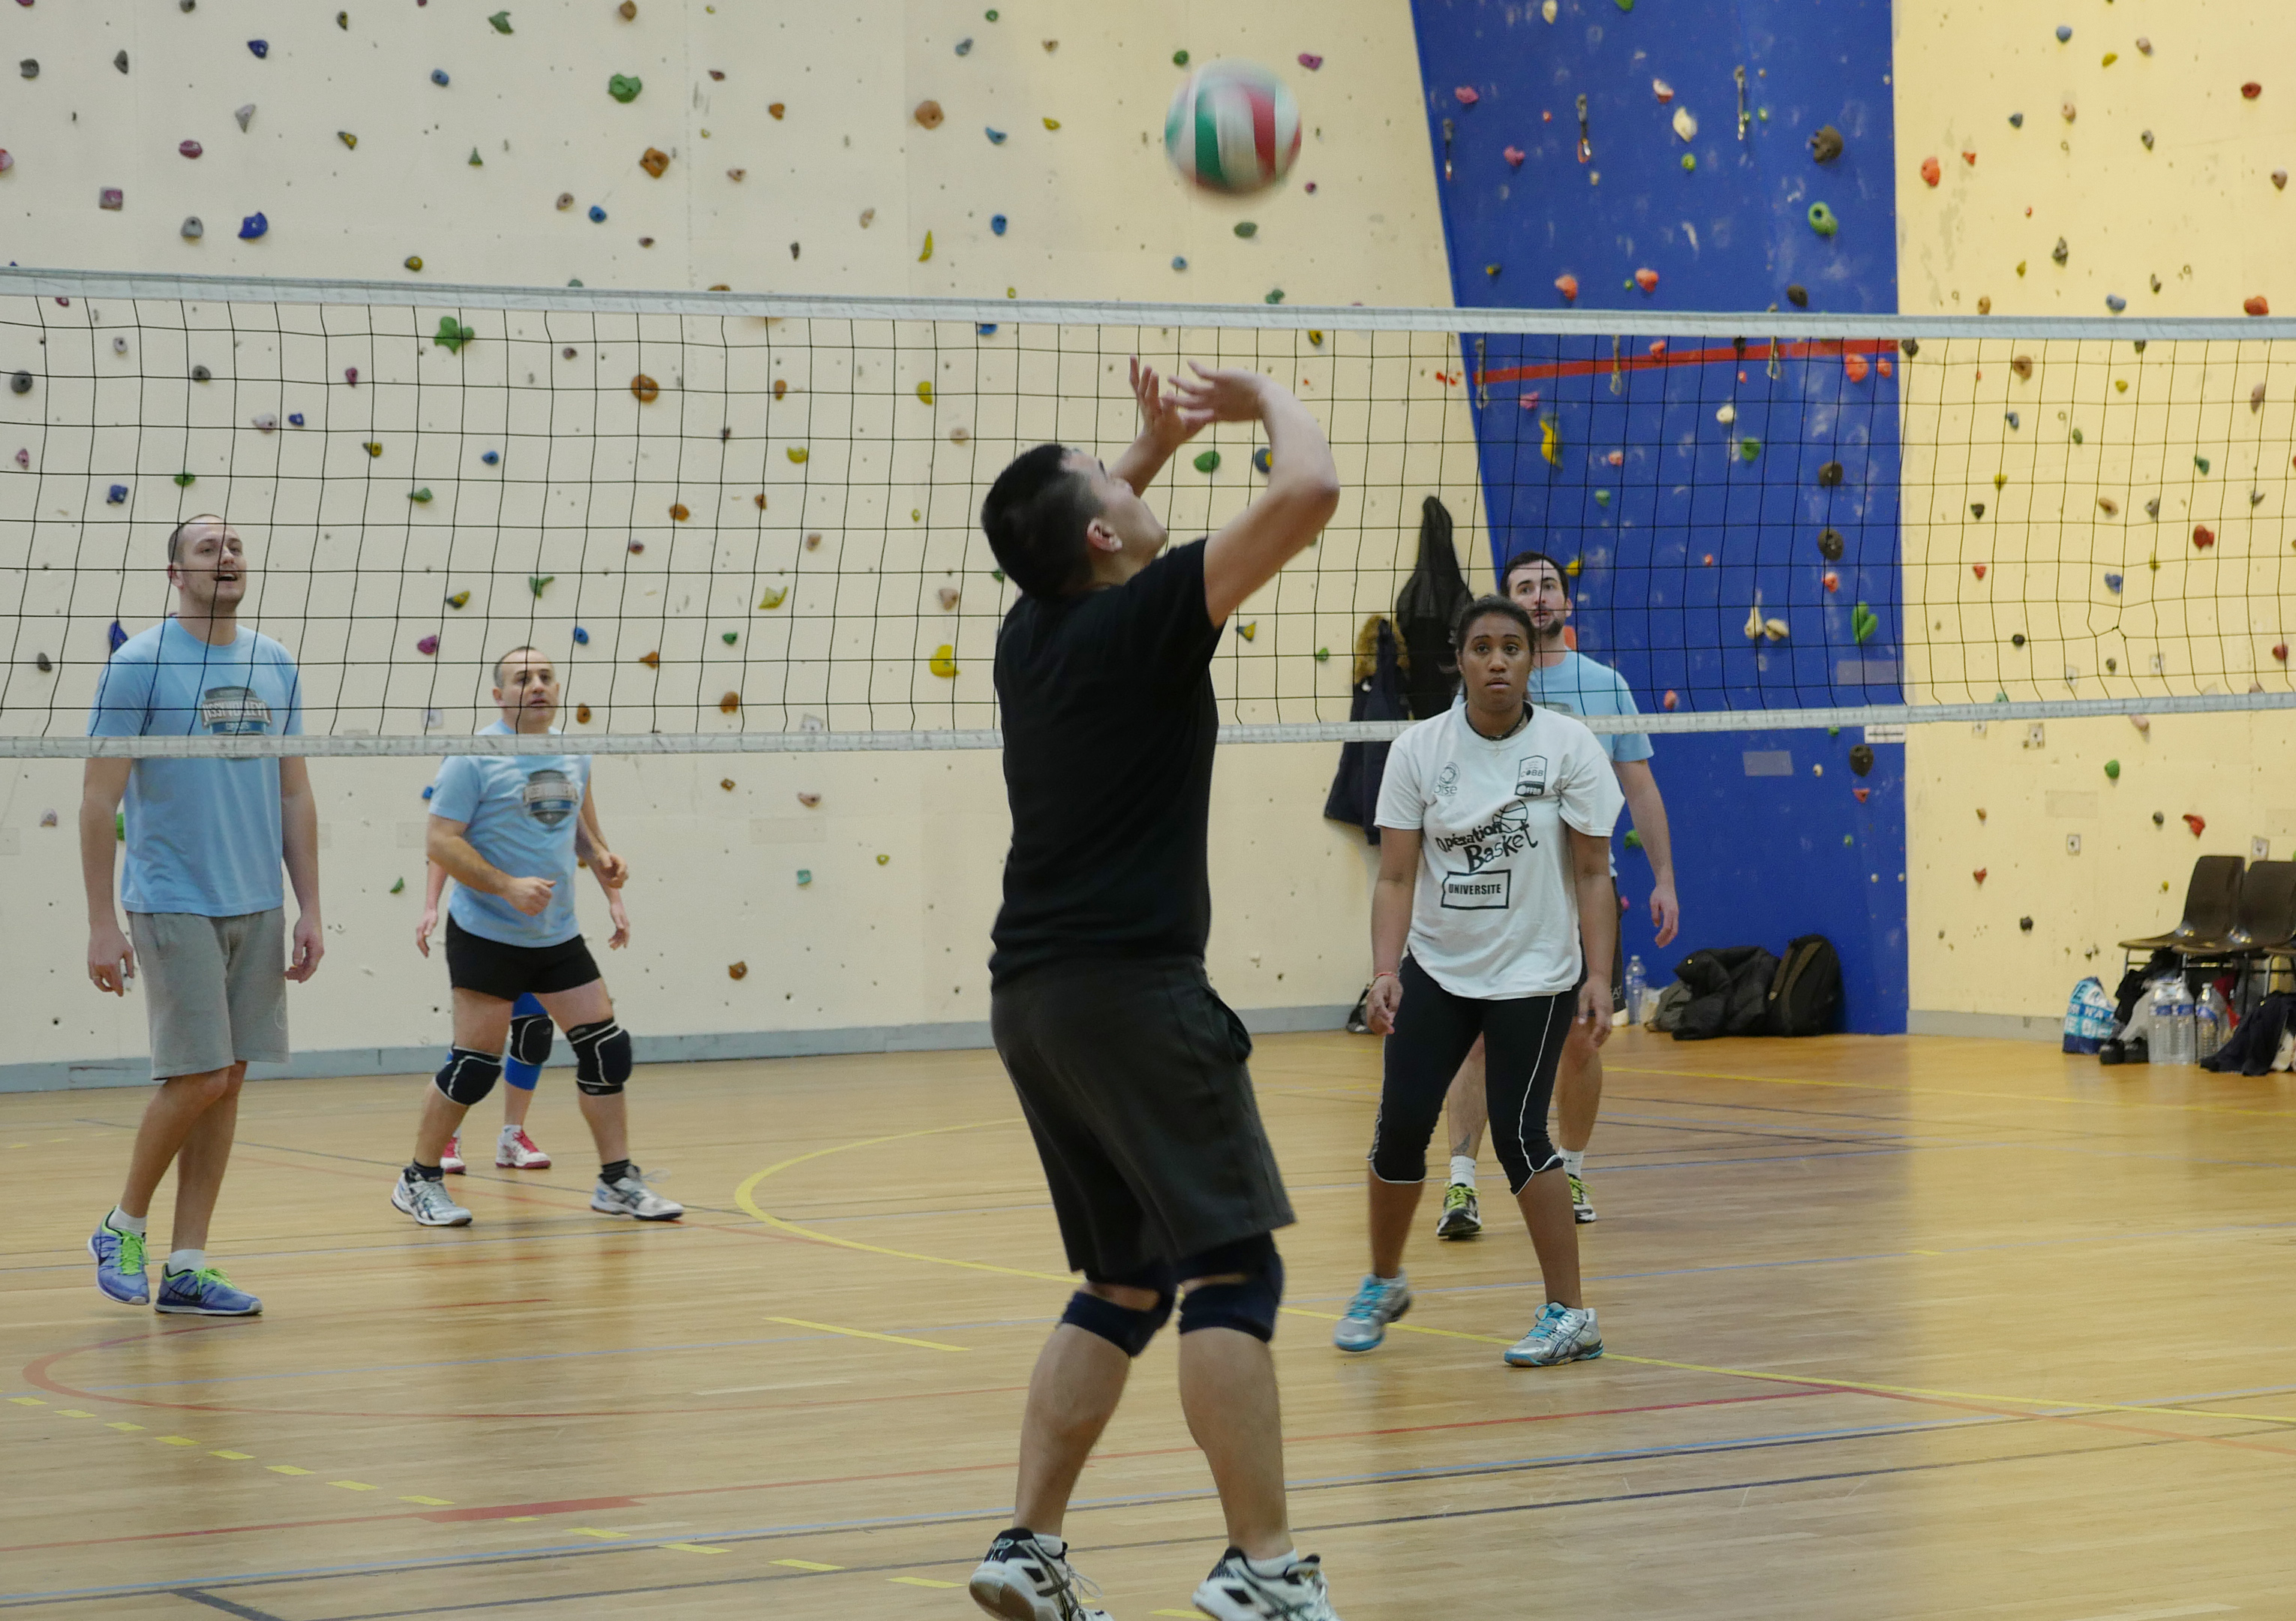 Tournoi Volley USMA 2015-24.JPG